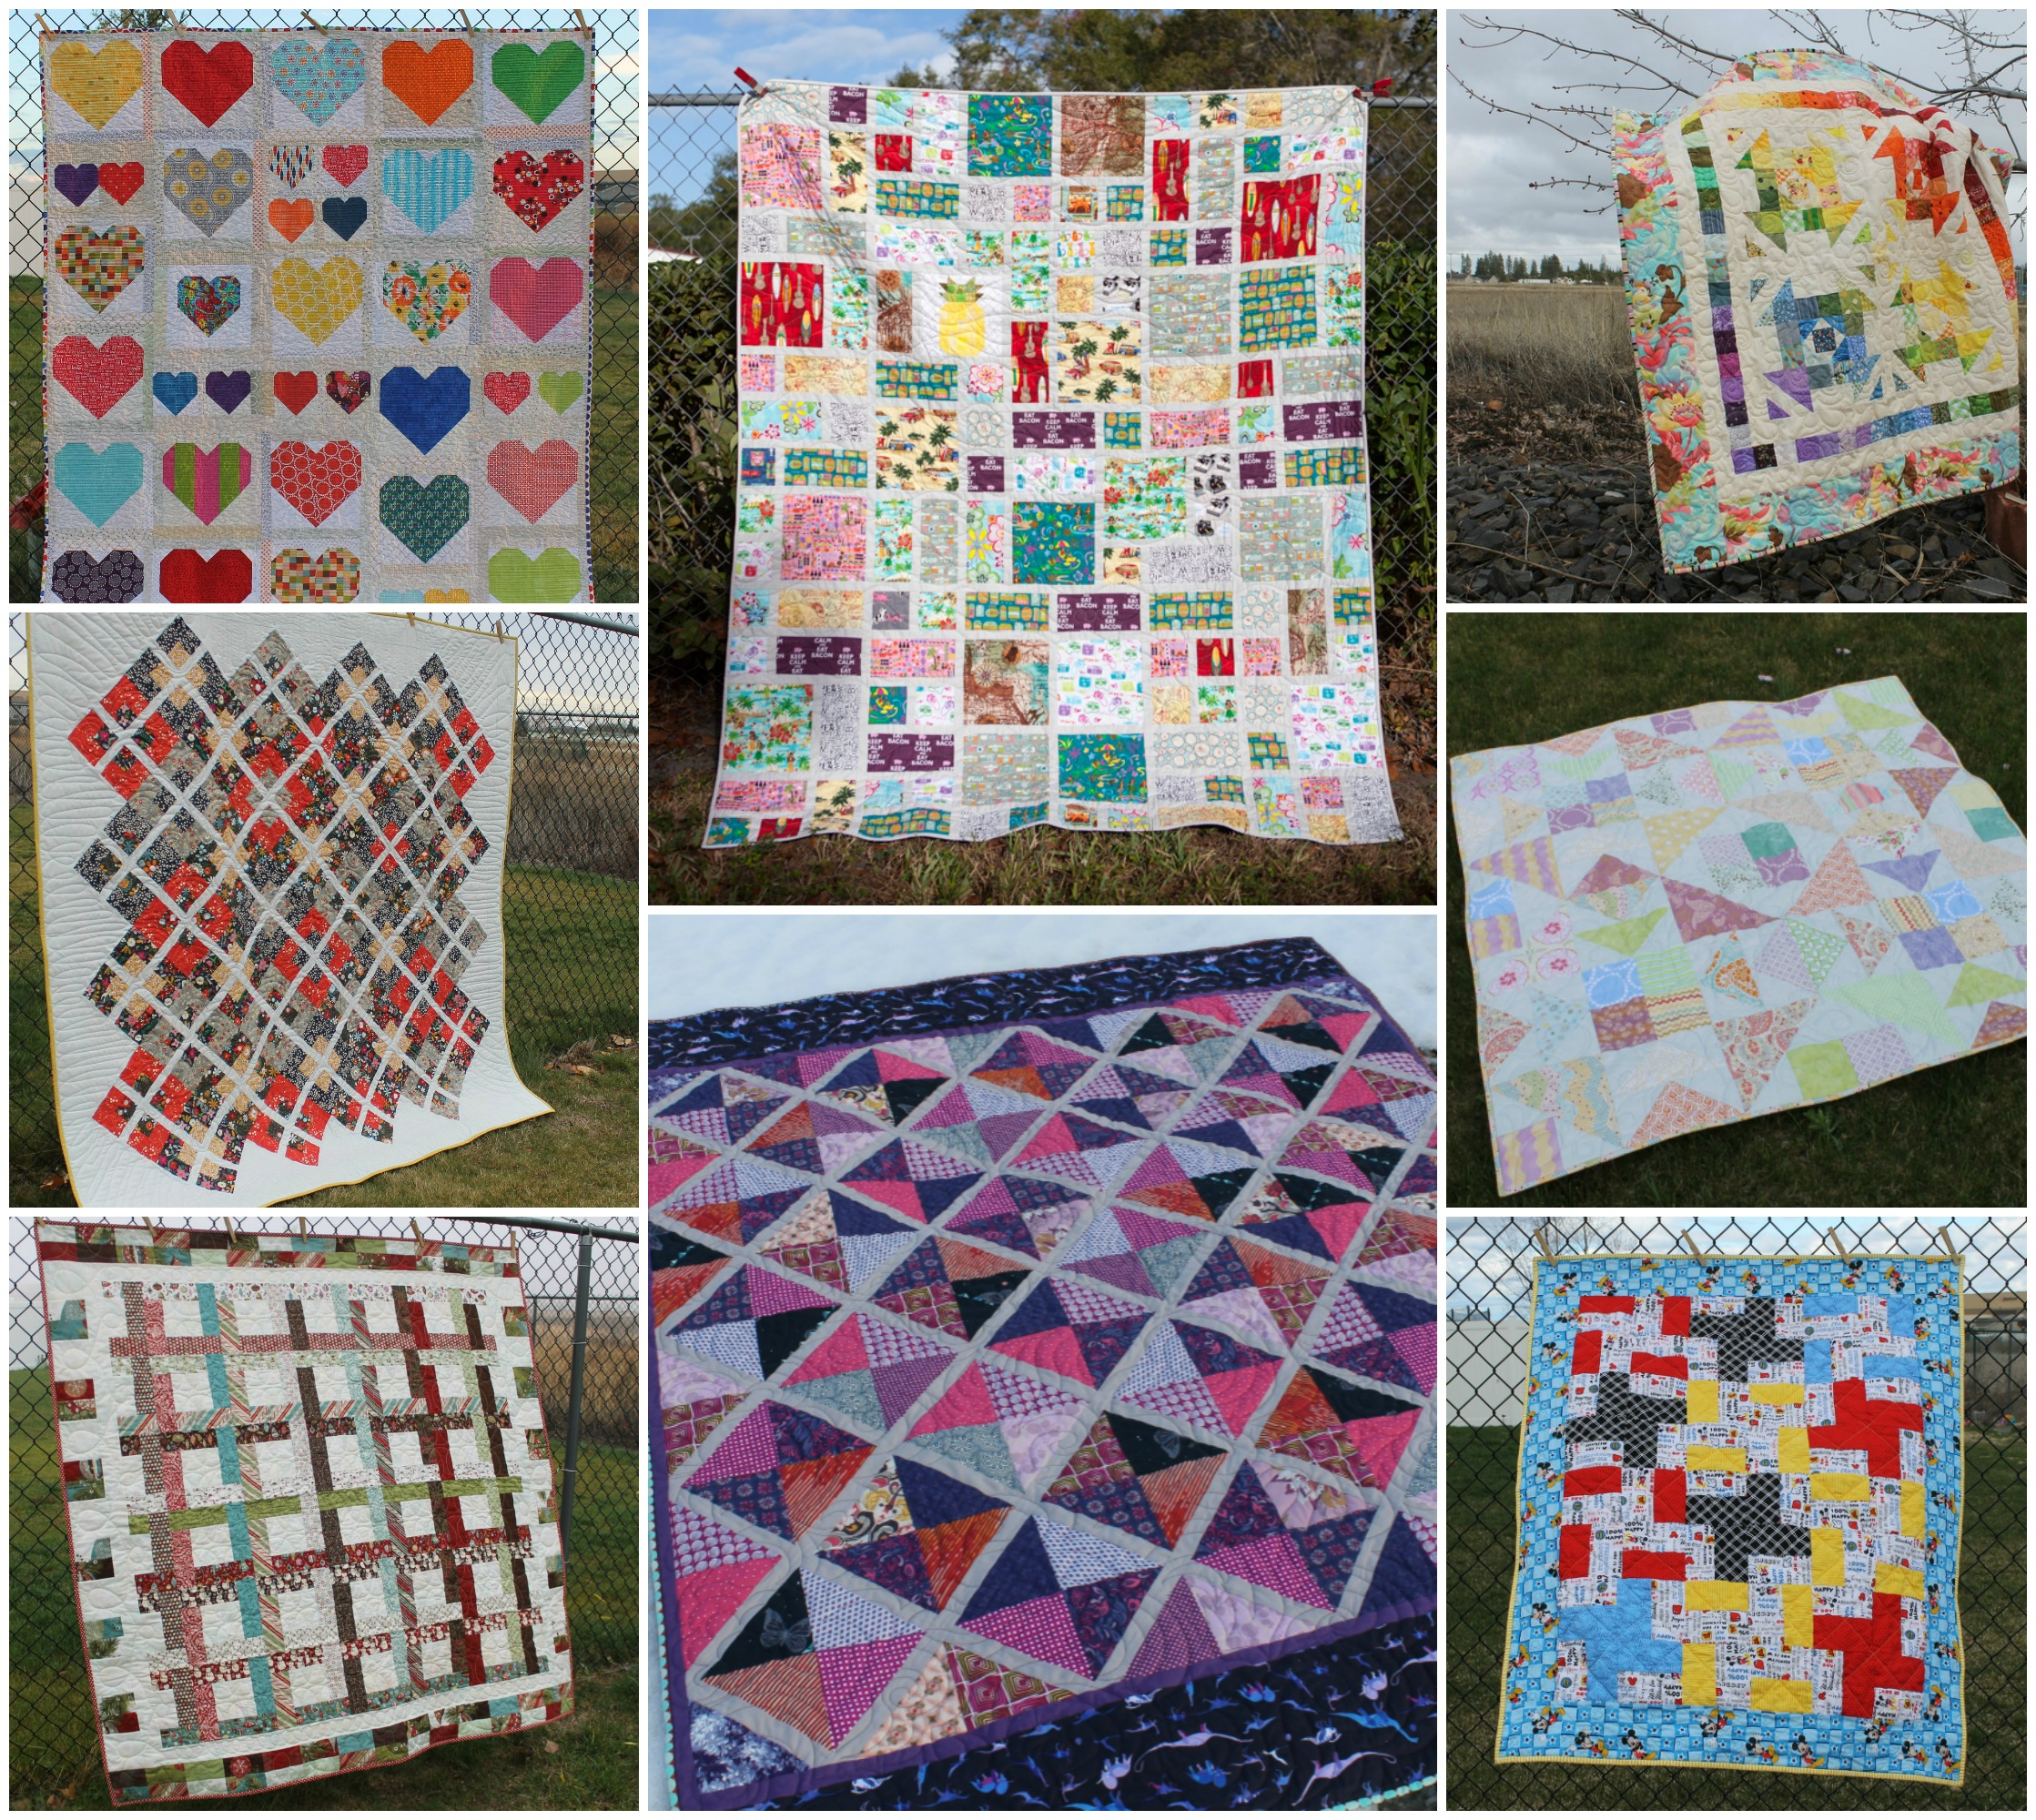 fninished_quilts.jpg